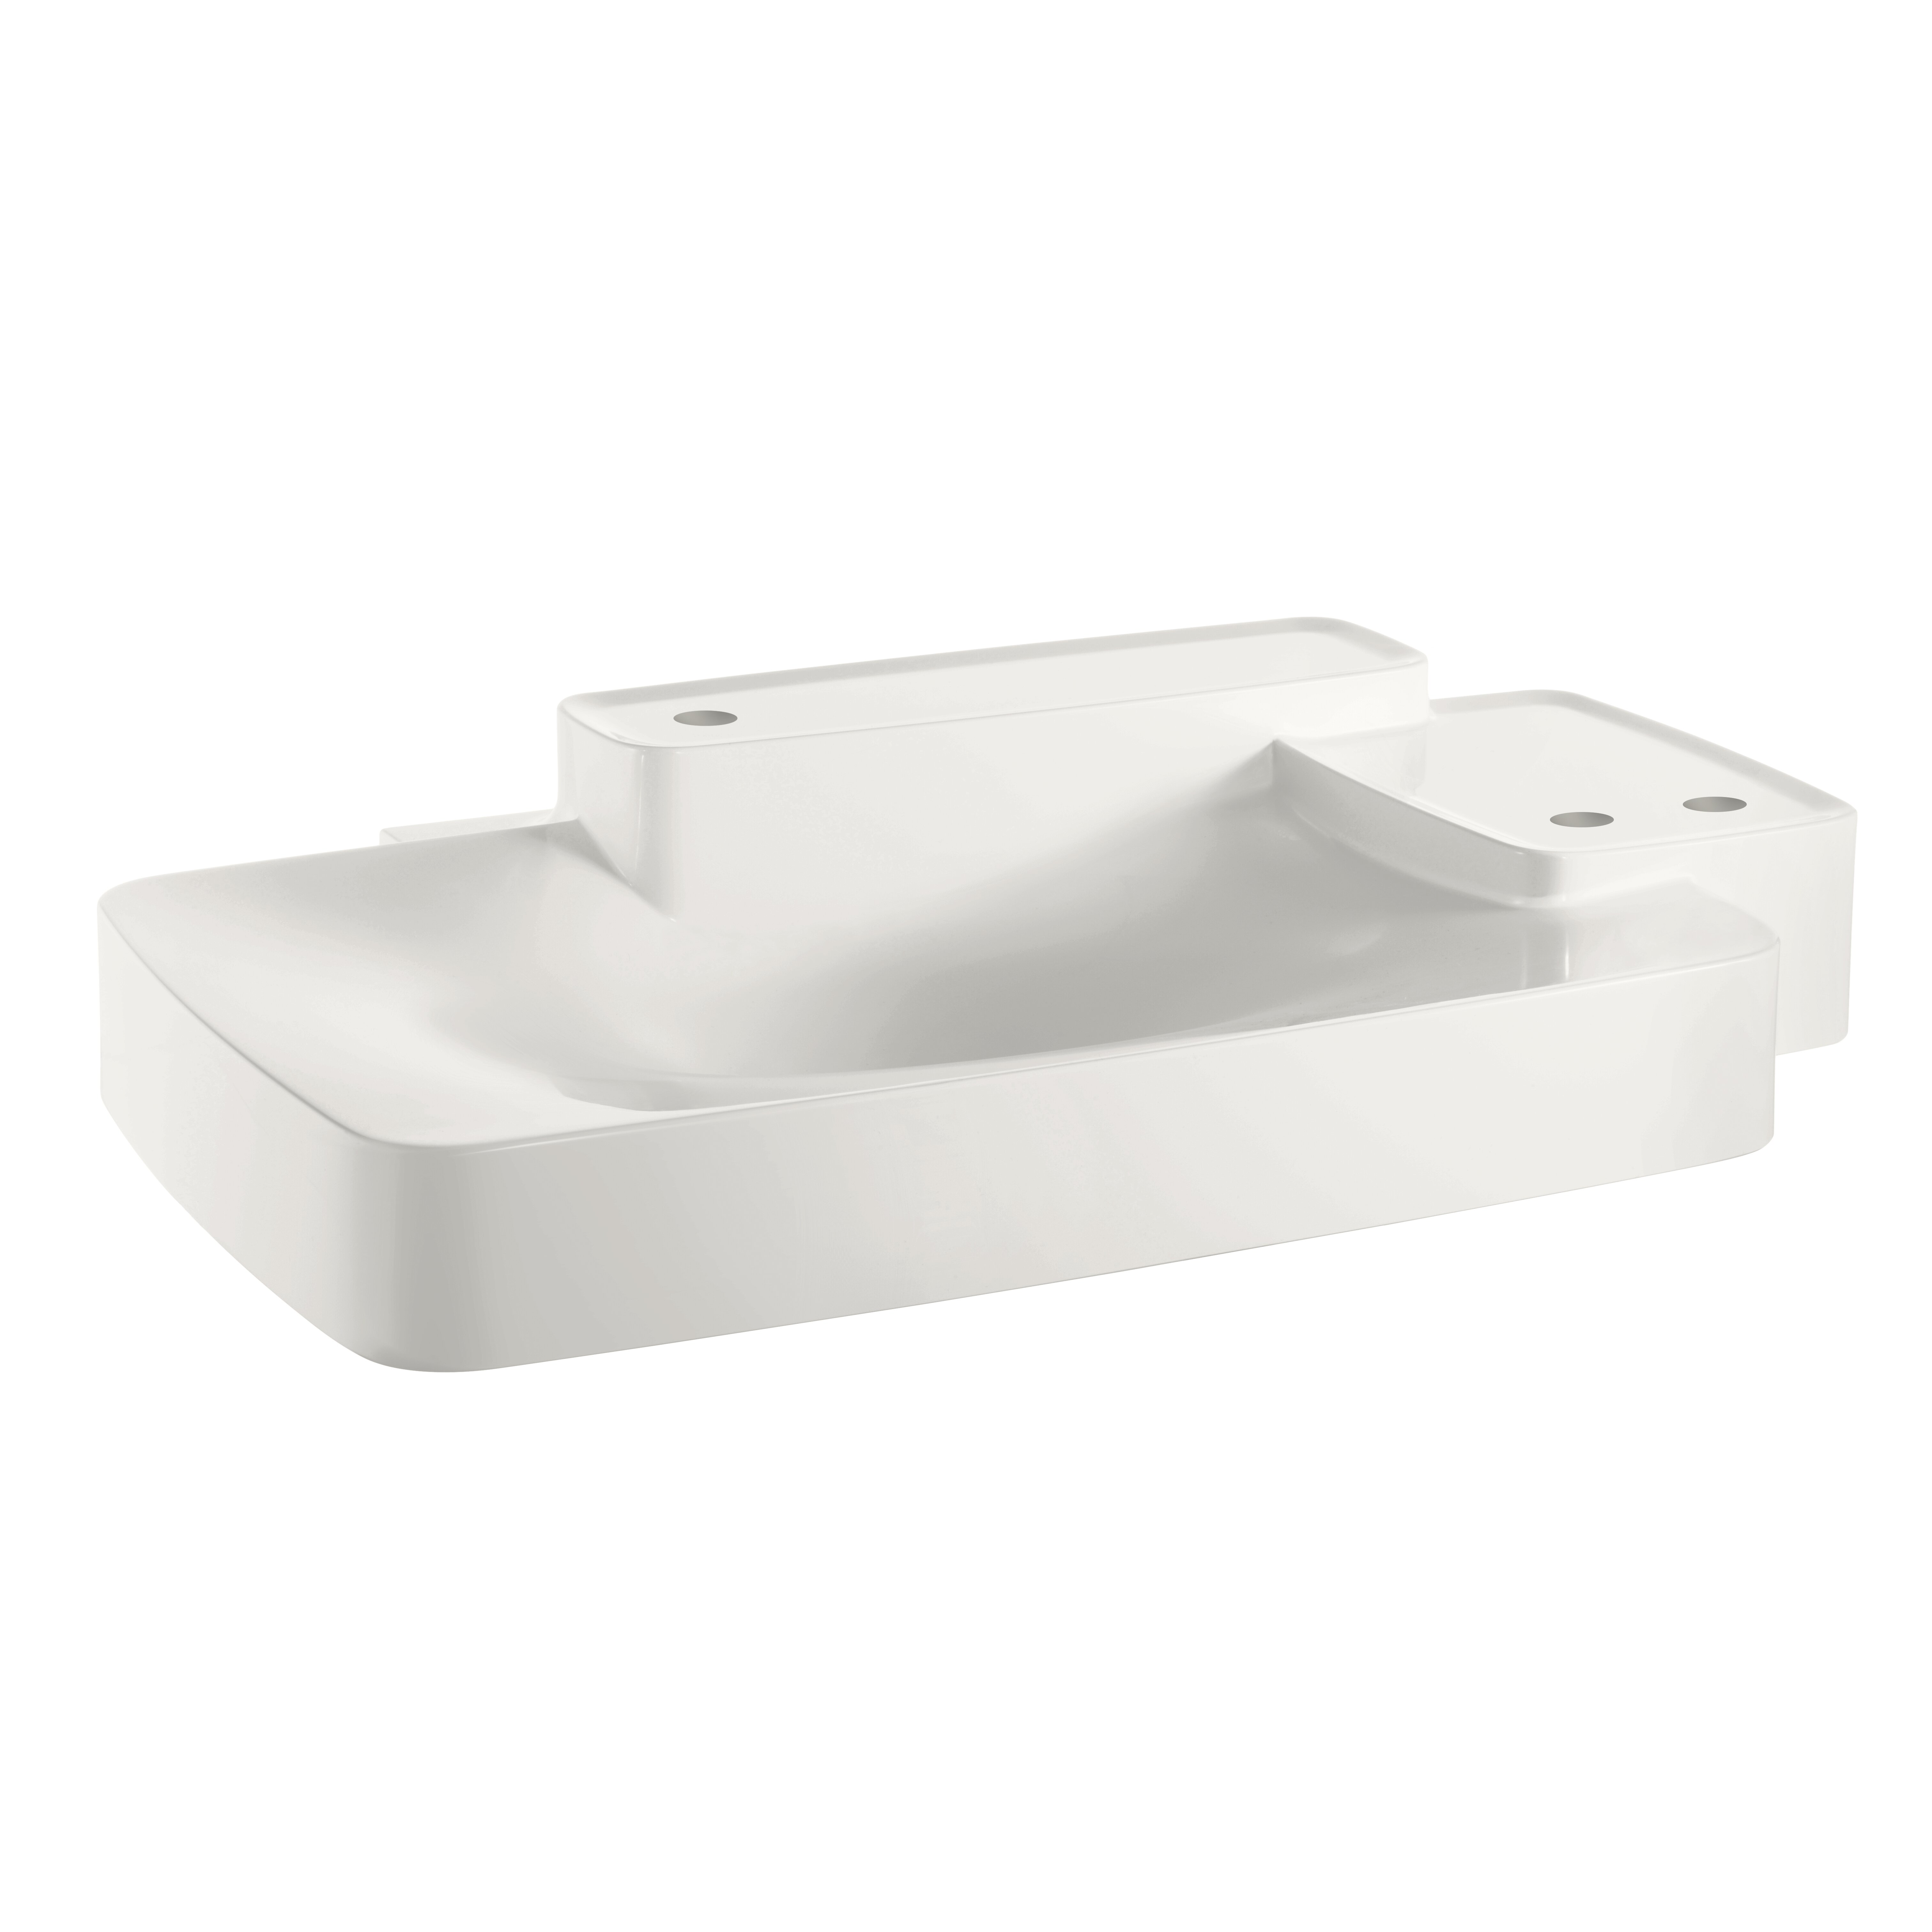 Sink Shelves Bathroom: Axor Axor Bouroullec Large Wall Mounted Bathroom Sink With